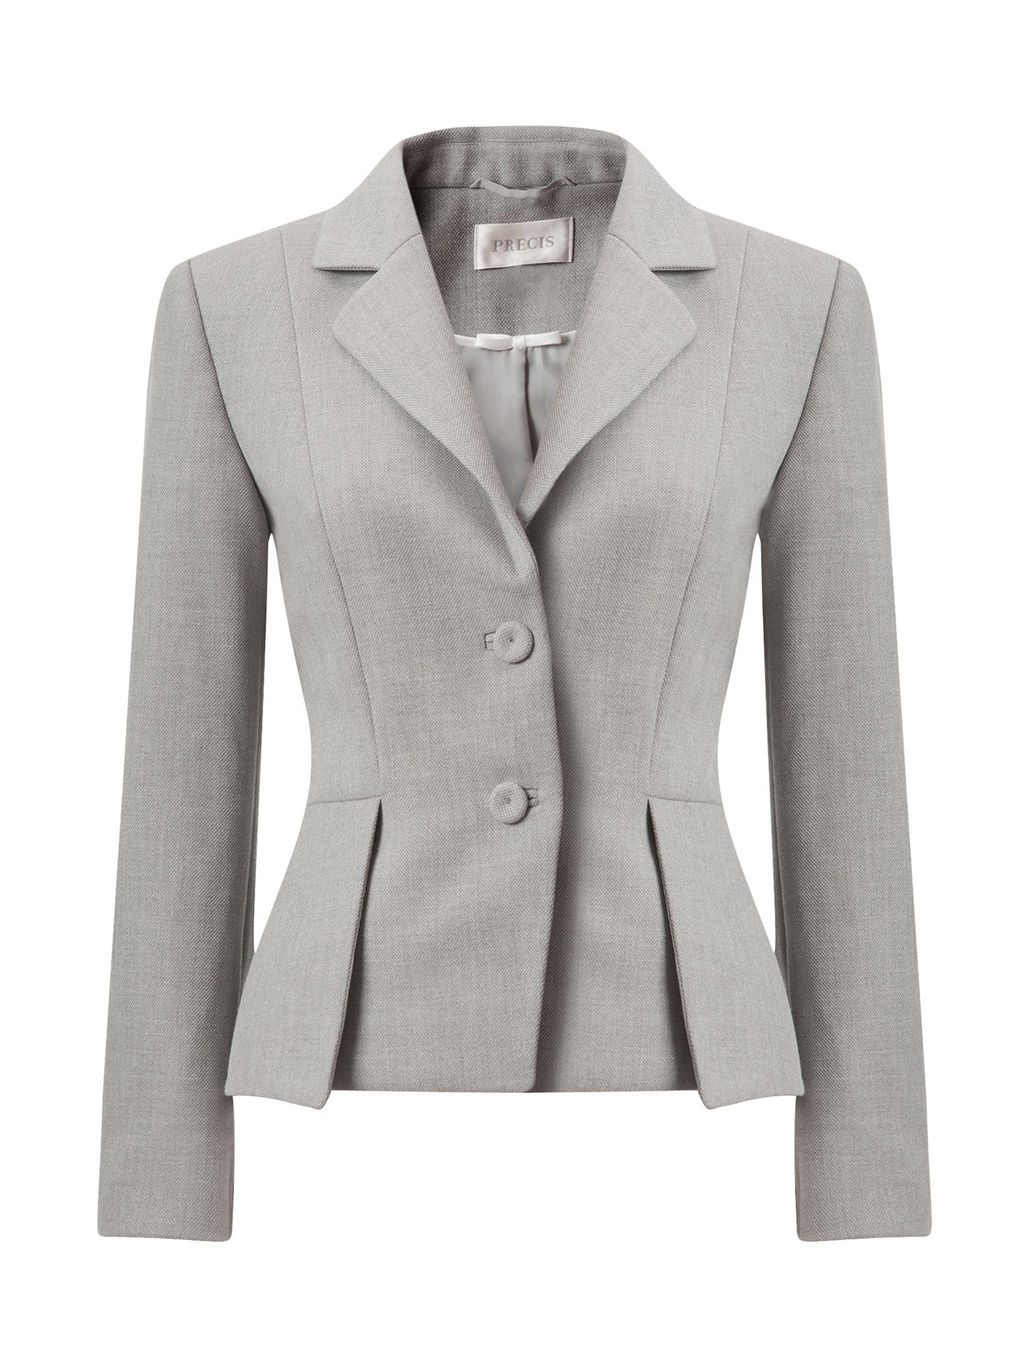 Petite Peplum Tailored Jacket - pattern: plain; style: single breasted blazer; collar: standard lapel/rever collar; predominant colour: light grey; occasions: work, occasion; length: standard; fit: tailored/fitted; fibres: wool - mix; waist detail: peplum detail at waist; sleeve length: long sleeve; sleeve style: standard; collar break: medium; pattern type: fabric; texture group: woven light midweight; wardrobe: investment; season: a/w 2016